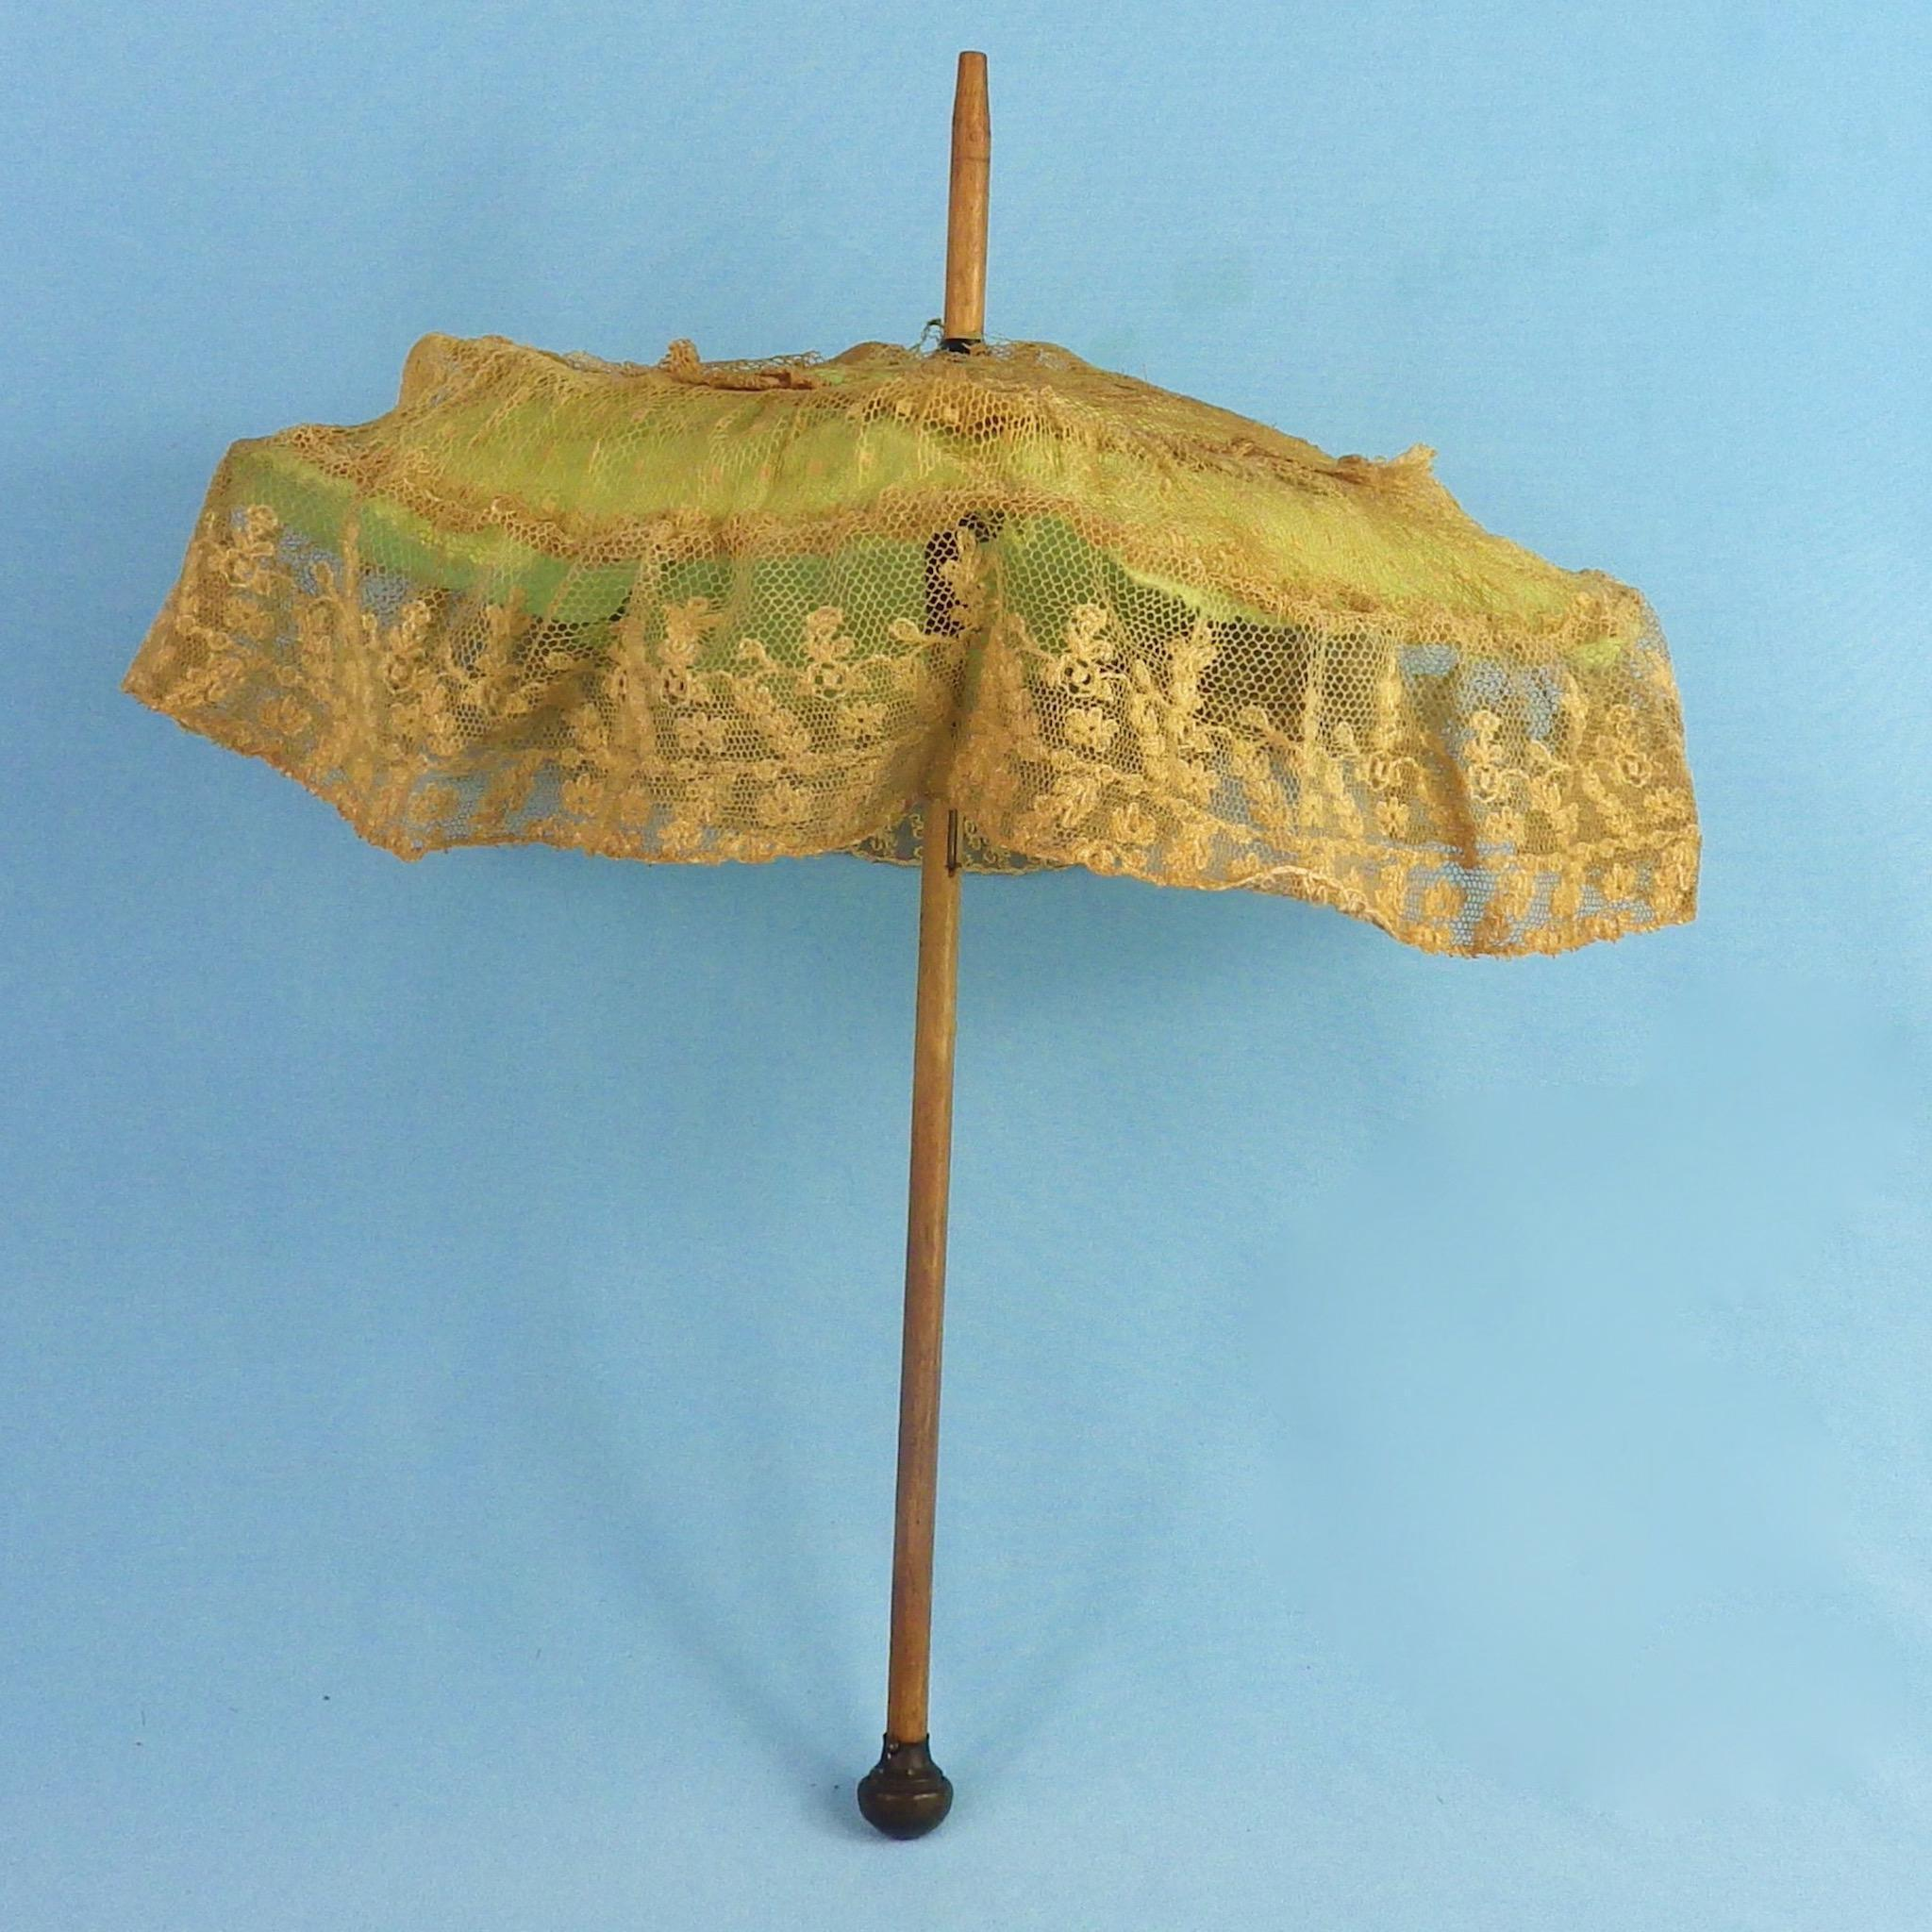 Antique Lace-Covered Working Doll Size Umbrella Parasol